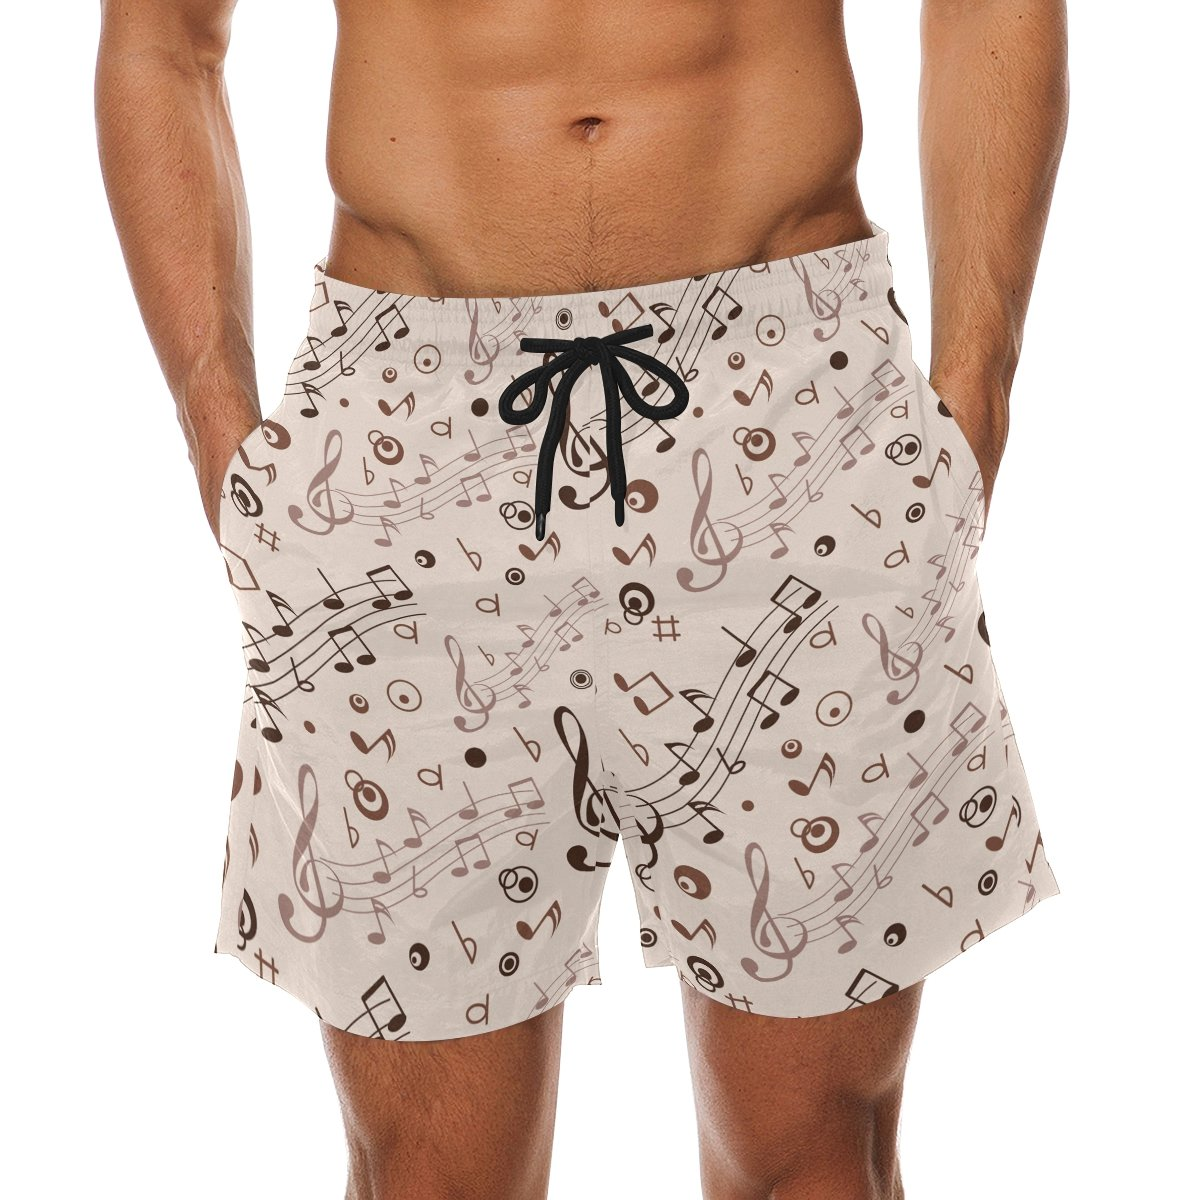 LORVIES Mens Musical Notes Beach Board Shorts Quick Dry Swim Trunk